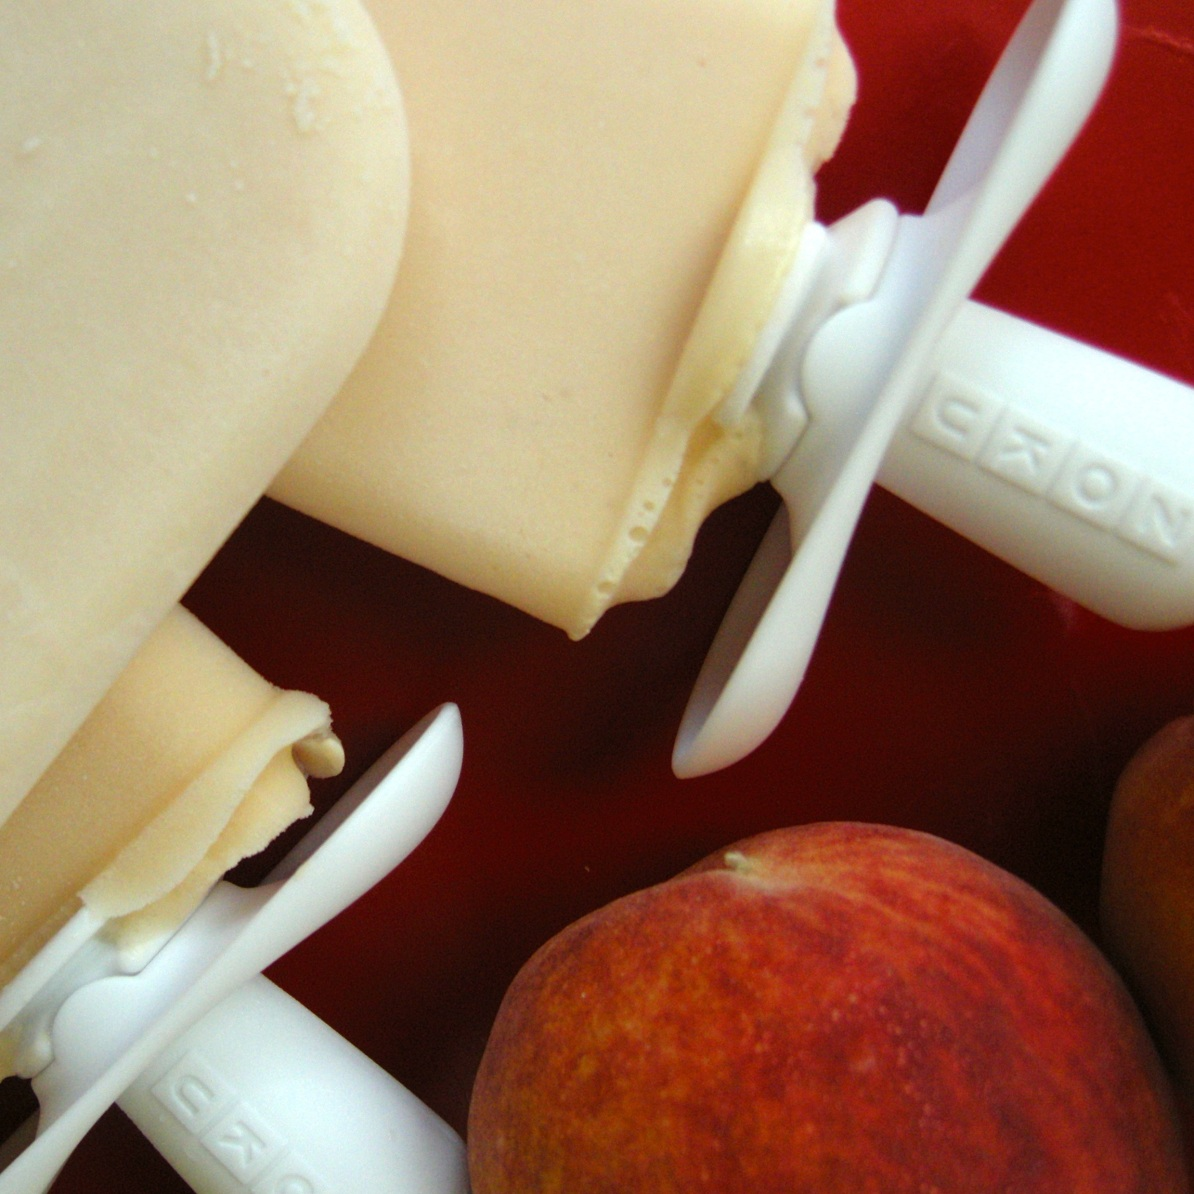 Creamy Peach-Yogurt Popsicles